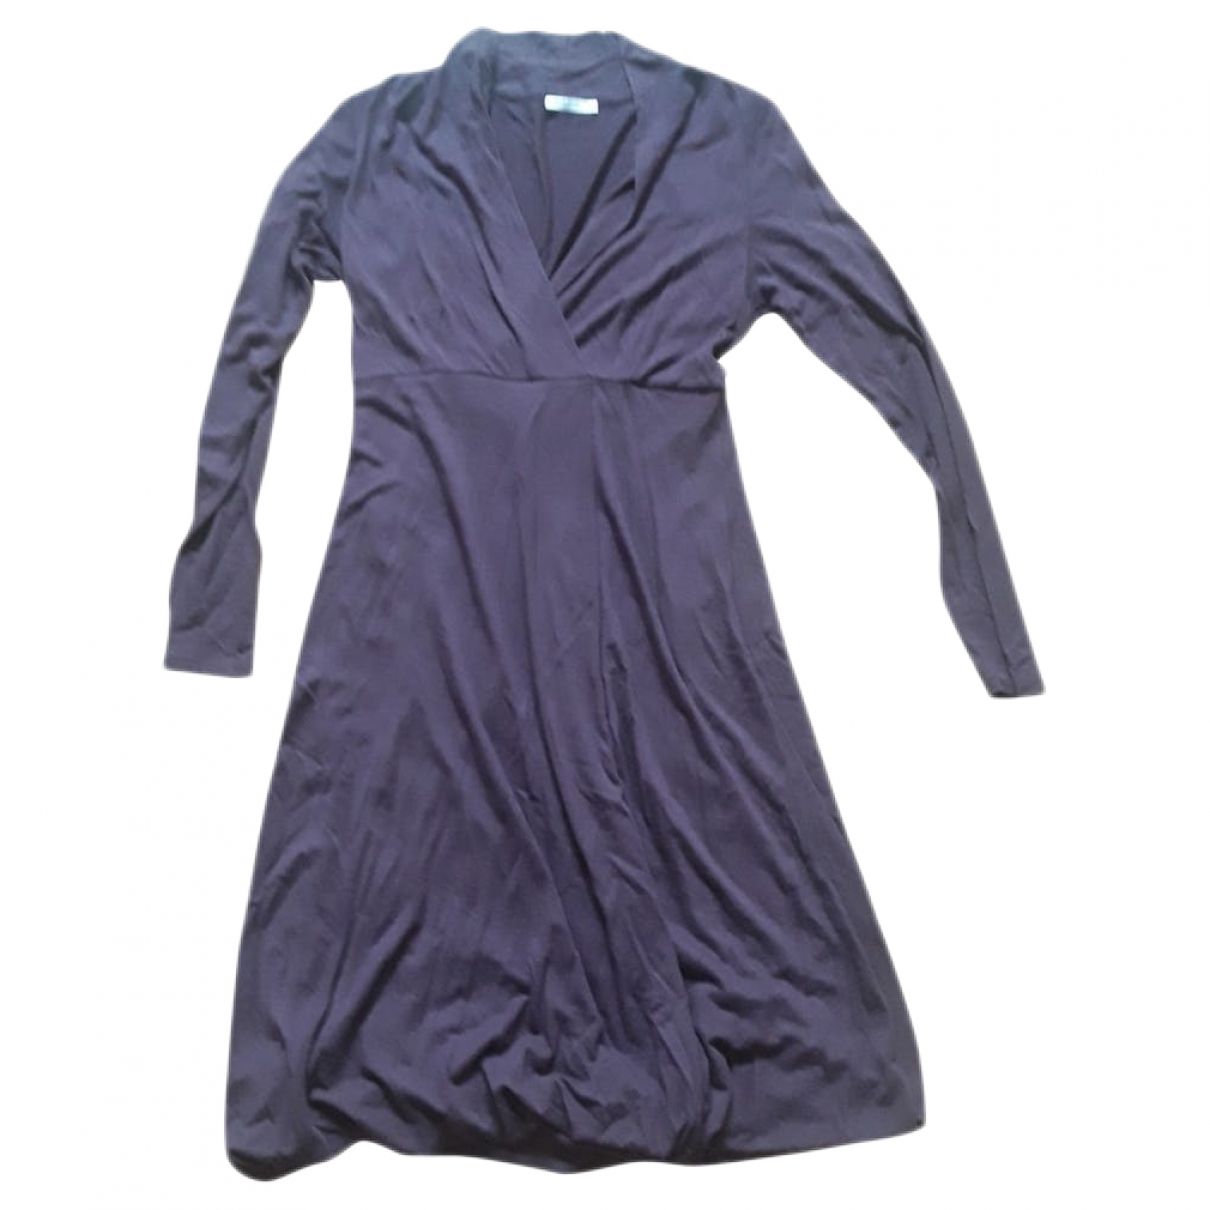 Marella \N Purple Cotton dress for Women S International